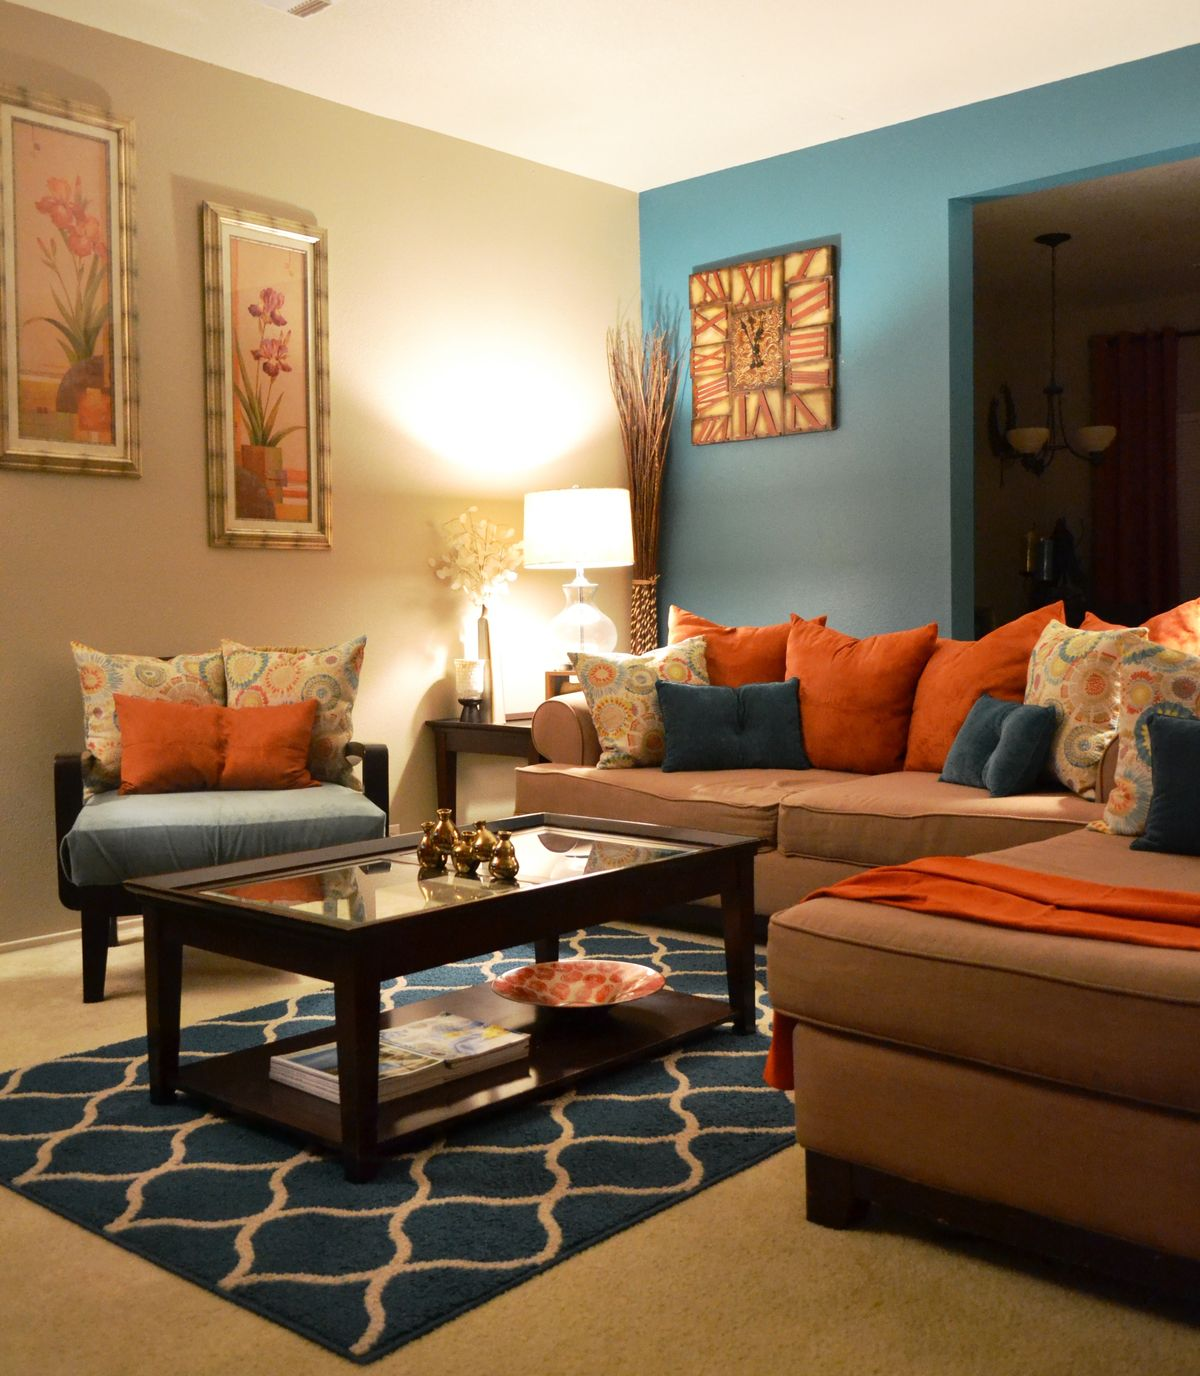 The Application Of Orange And Cool Grey In This Living Room Set Classy Brown Living Room Design Decorating Inspiration